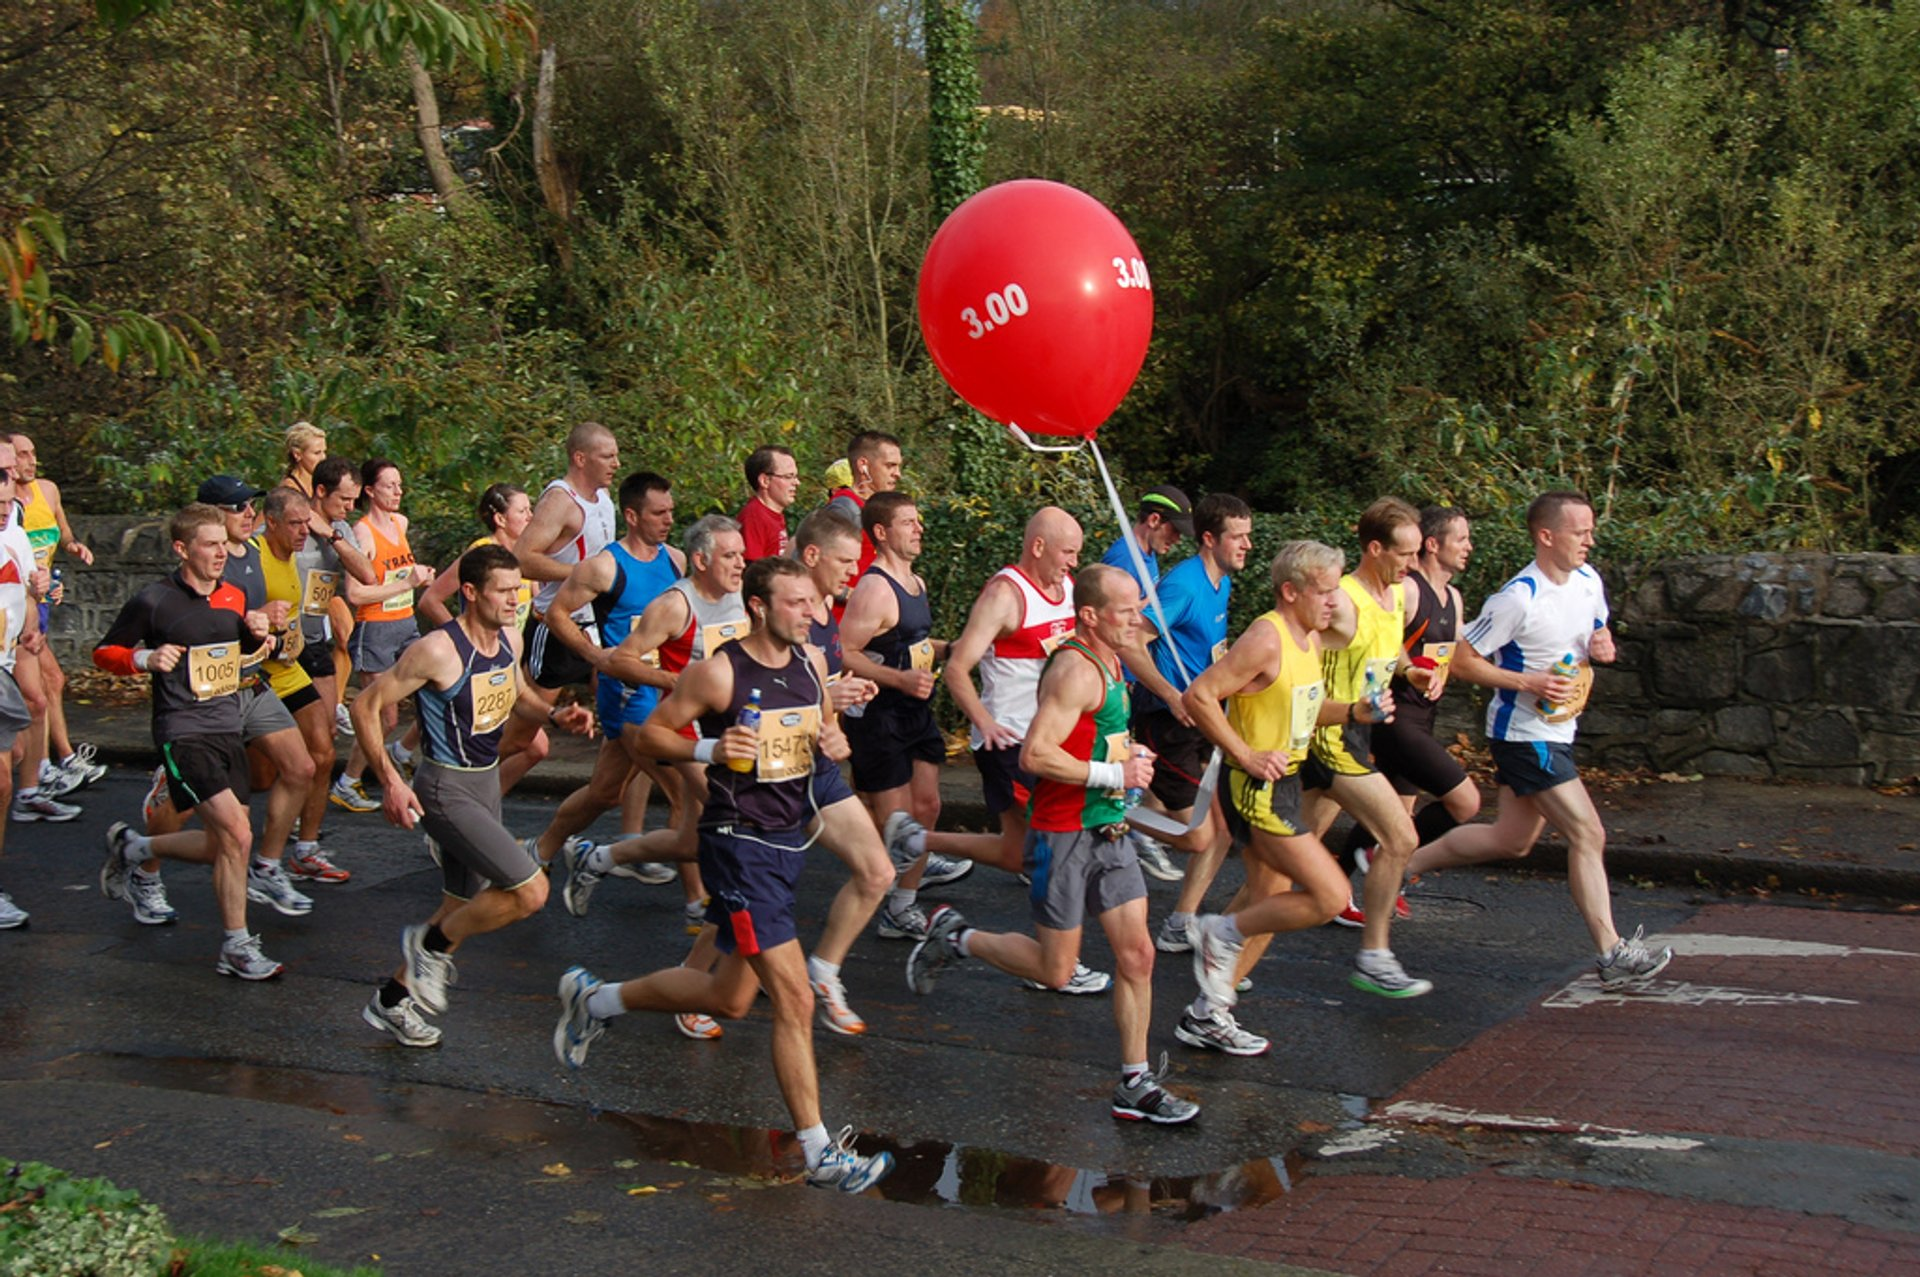 KBC Dublin Marathon in Dublin - Best Season 2020